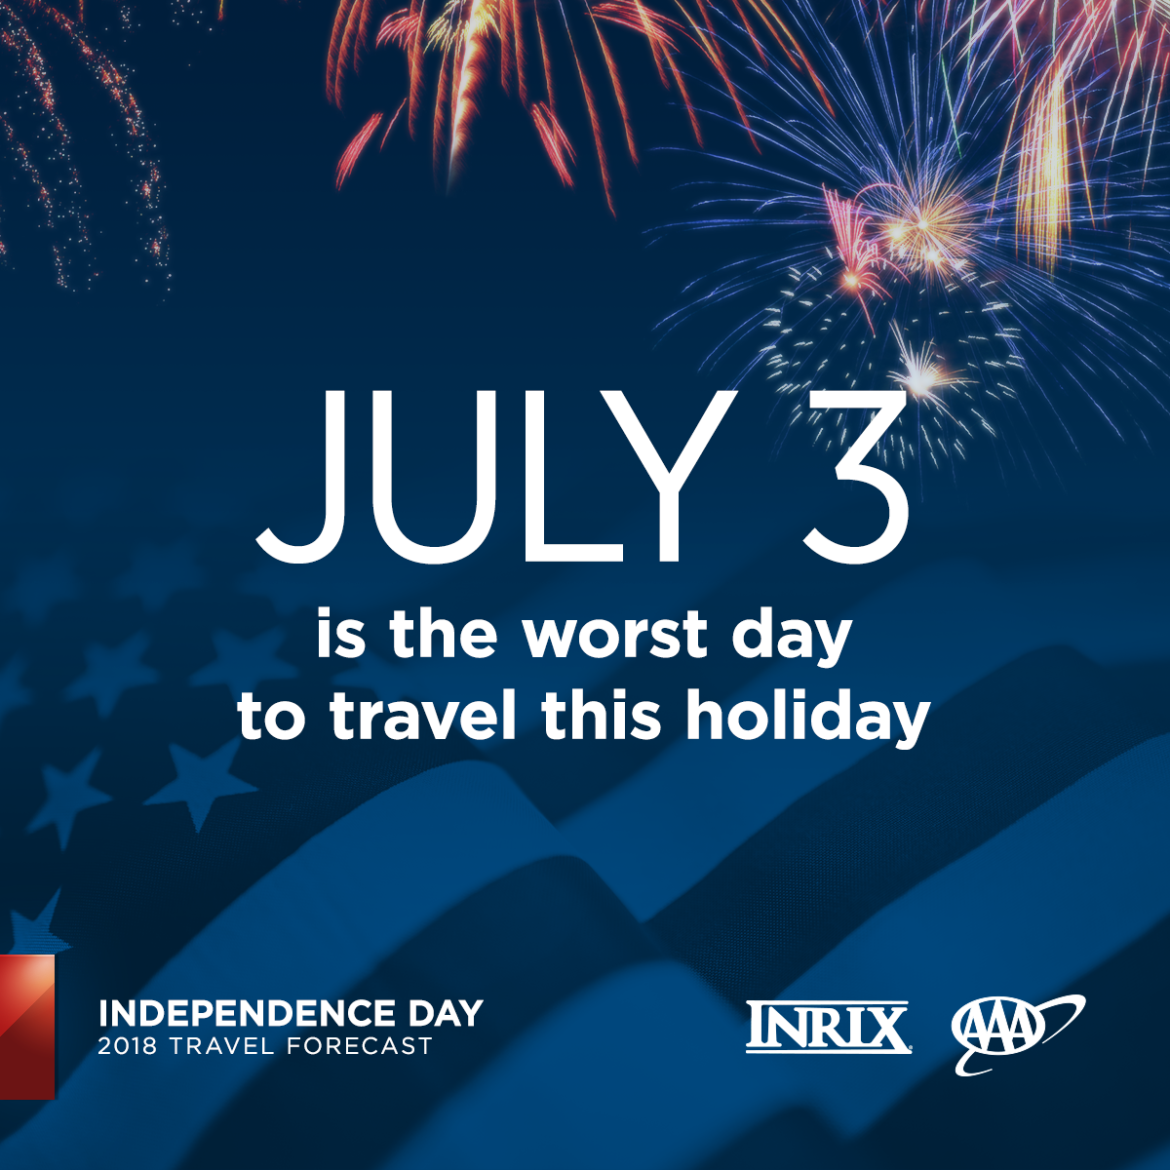 AAA Predicts Tuesday Will Be Worst Day to Travel for Fourth of July Holiday  - Darienite